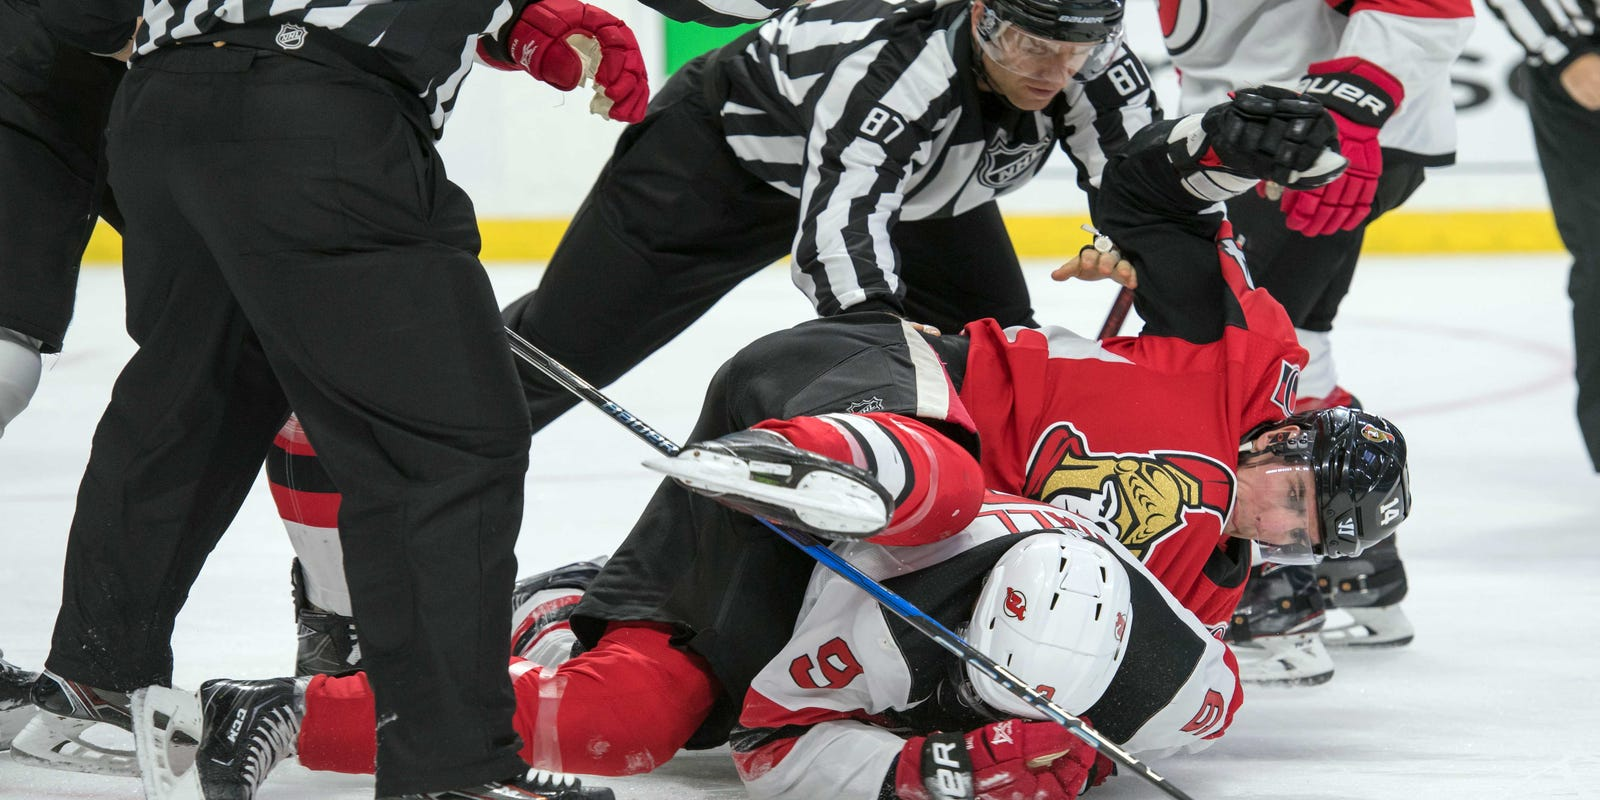 833abecfa68 Burrows faces hearing after kneeing Taylor Hall in helmet